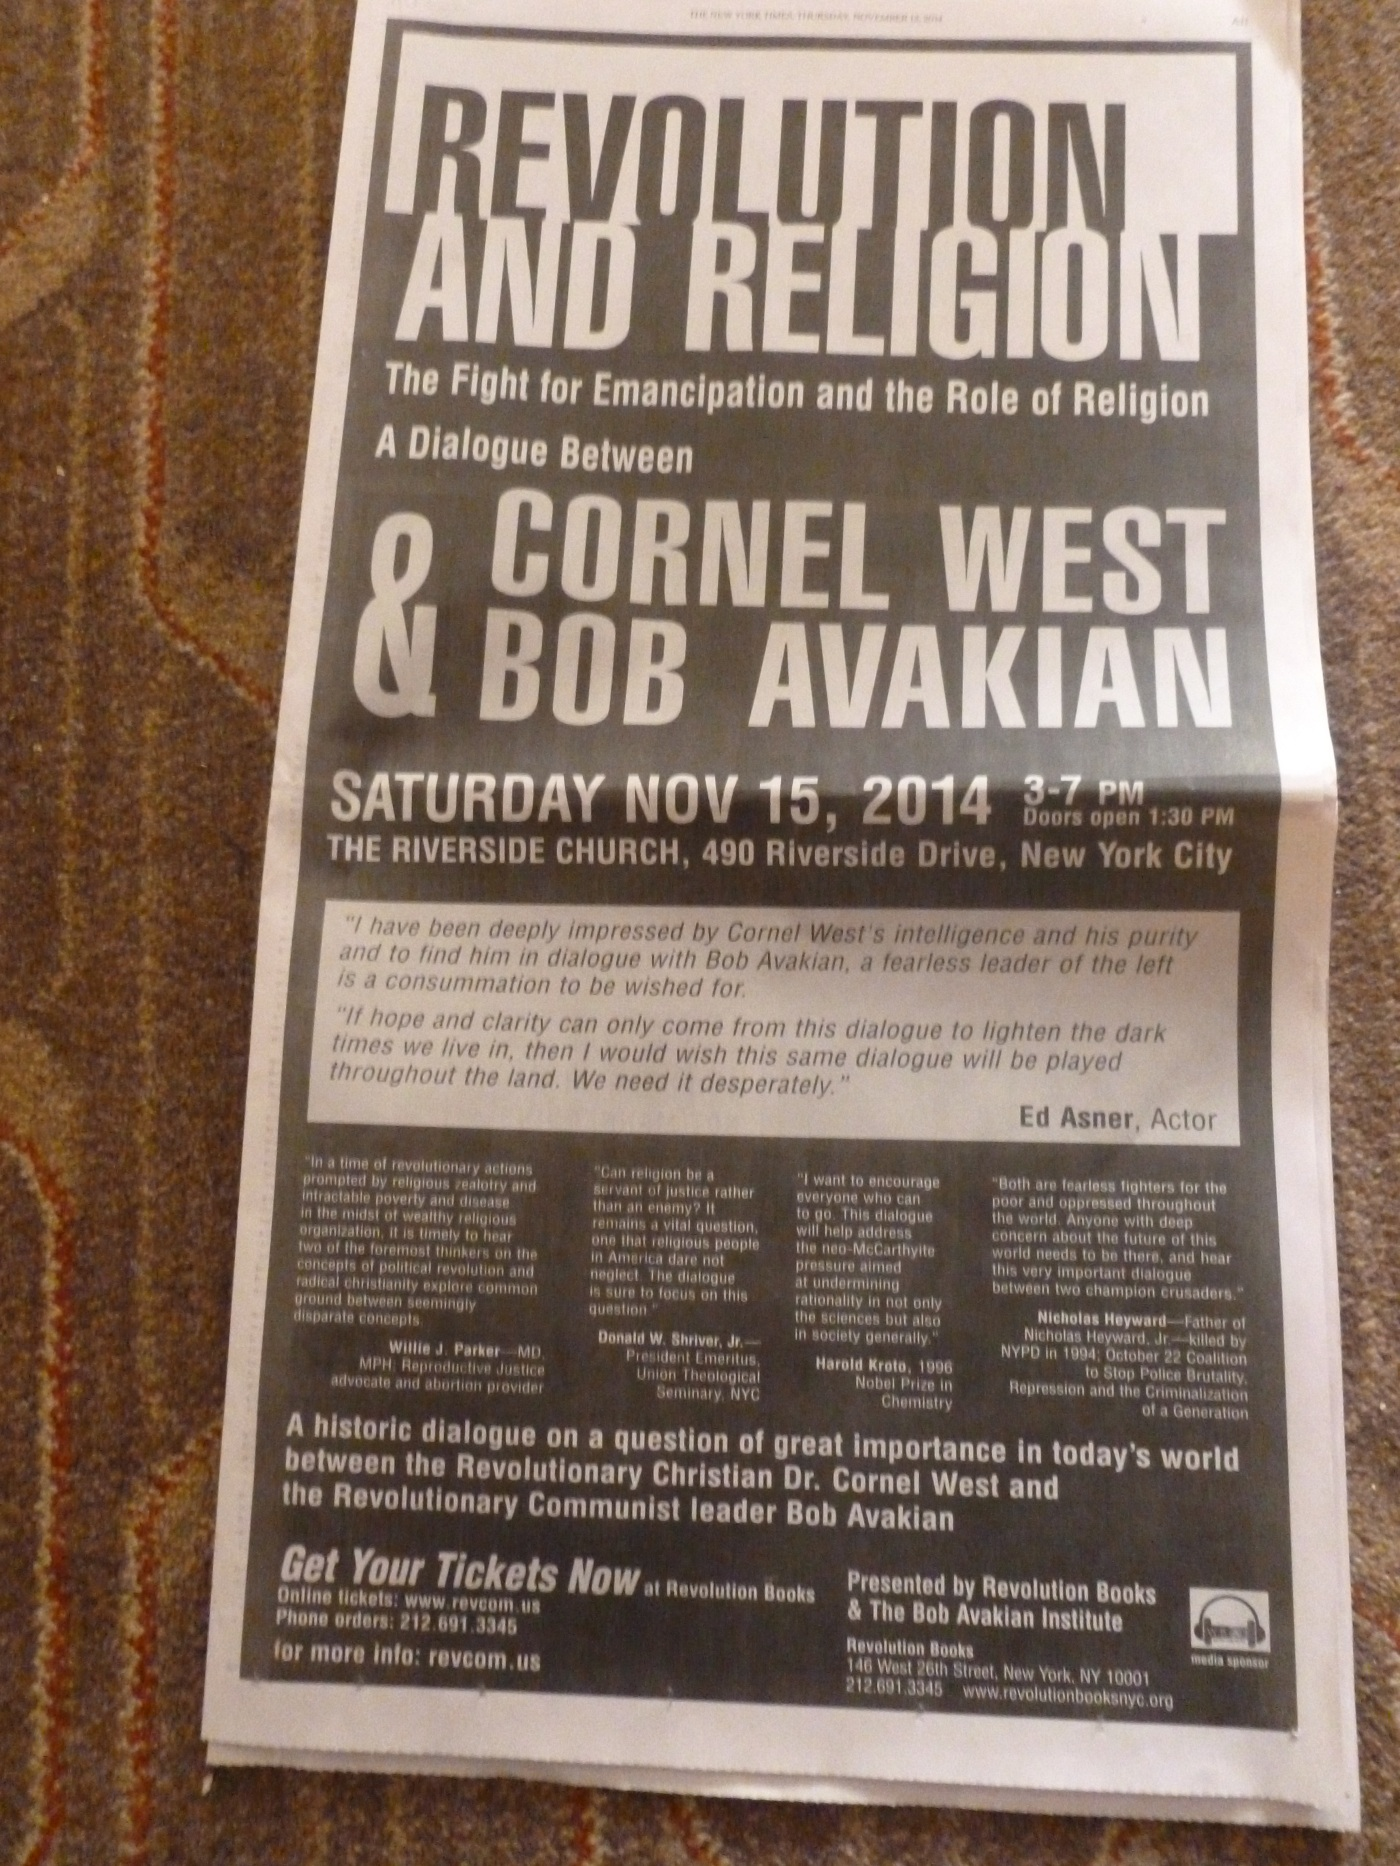 Full page ad in today's NY Times for Bob Avakian-Cornel West